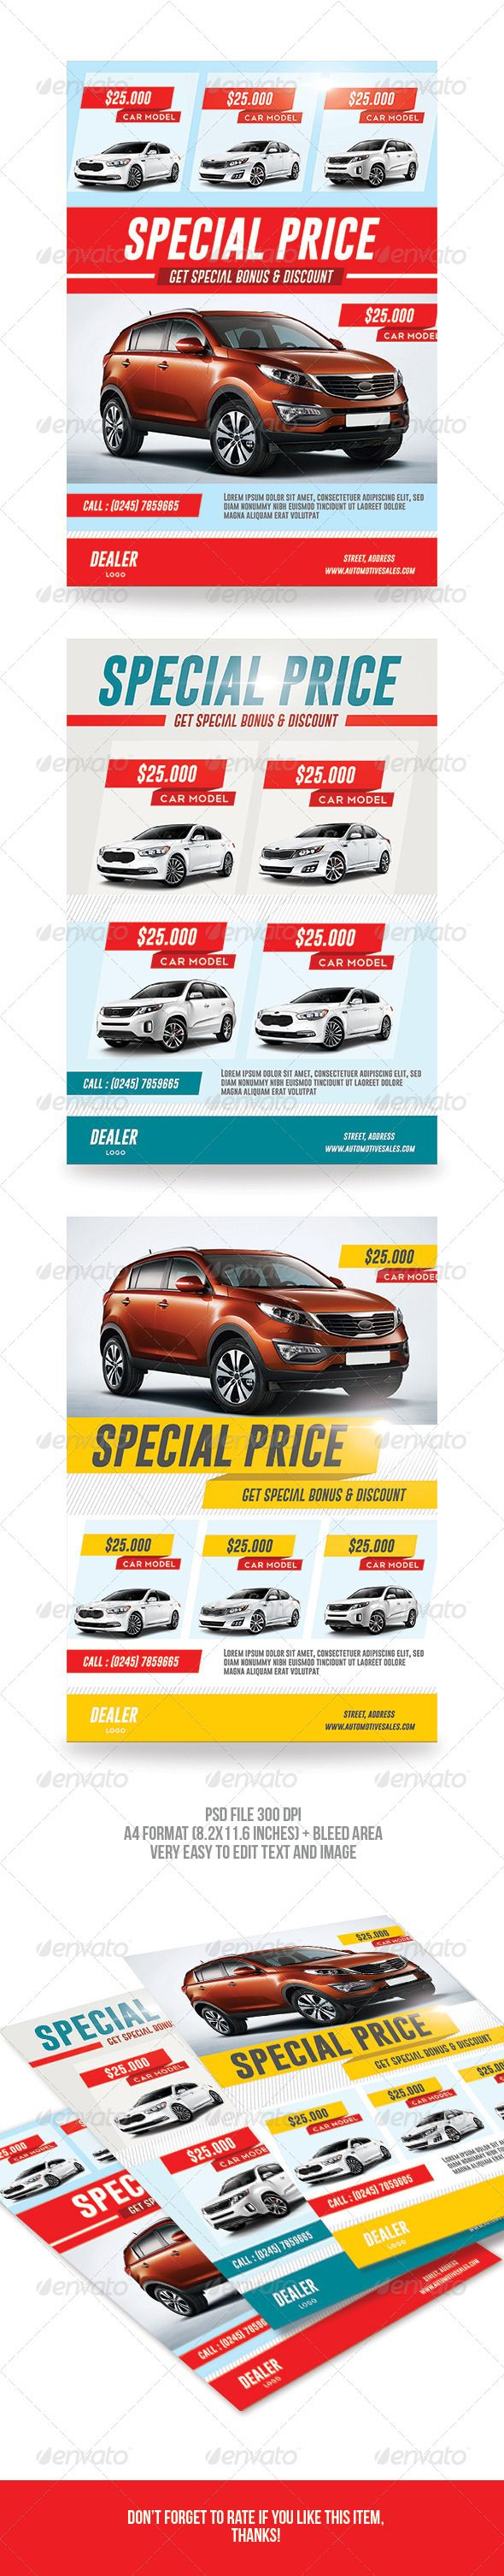 Car Sale Flyer — Photoshop PSD #template #ads • Available here → https://graphicriver.net/item/car-sale-flyer/7193129?ref=pxcr